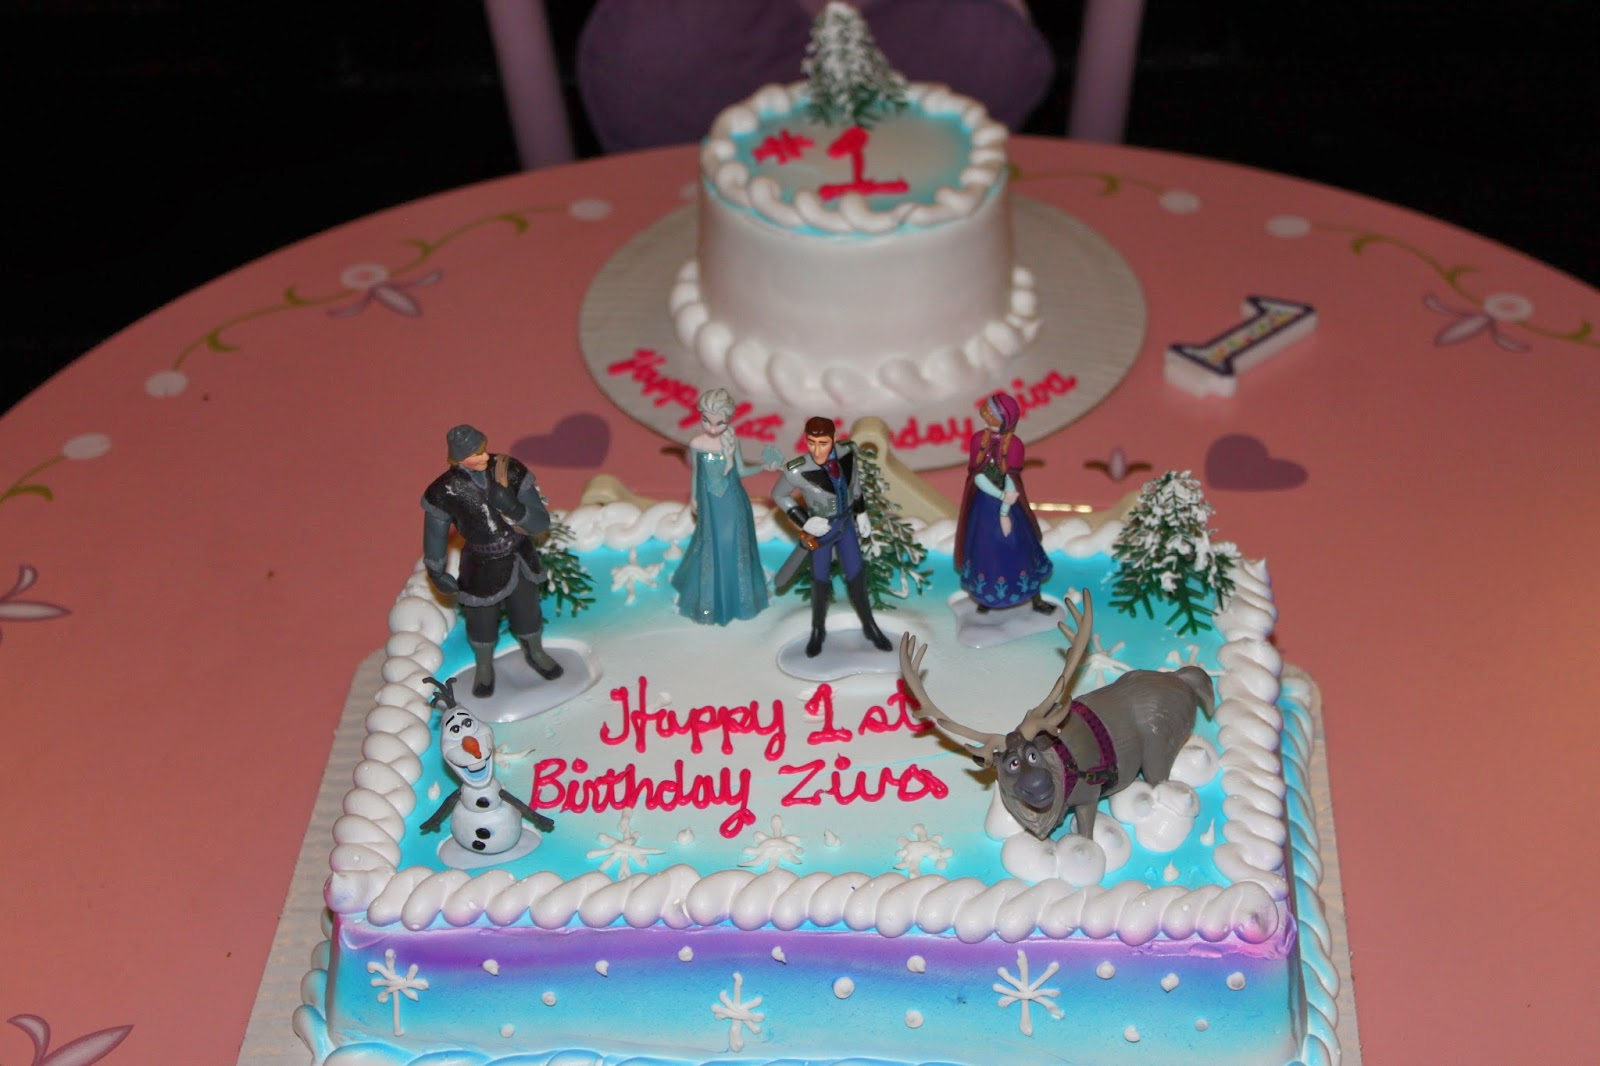 Cake Designs At Albertsons : Albertsons Theme Cakes Related Keywords - Albertsons Theme ...